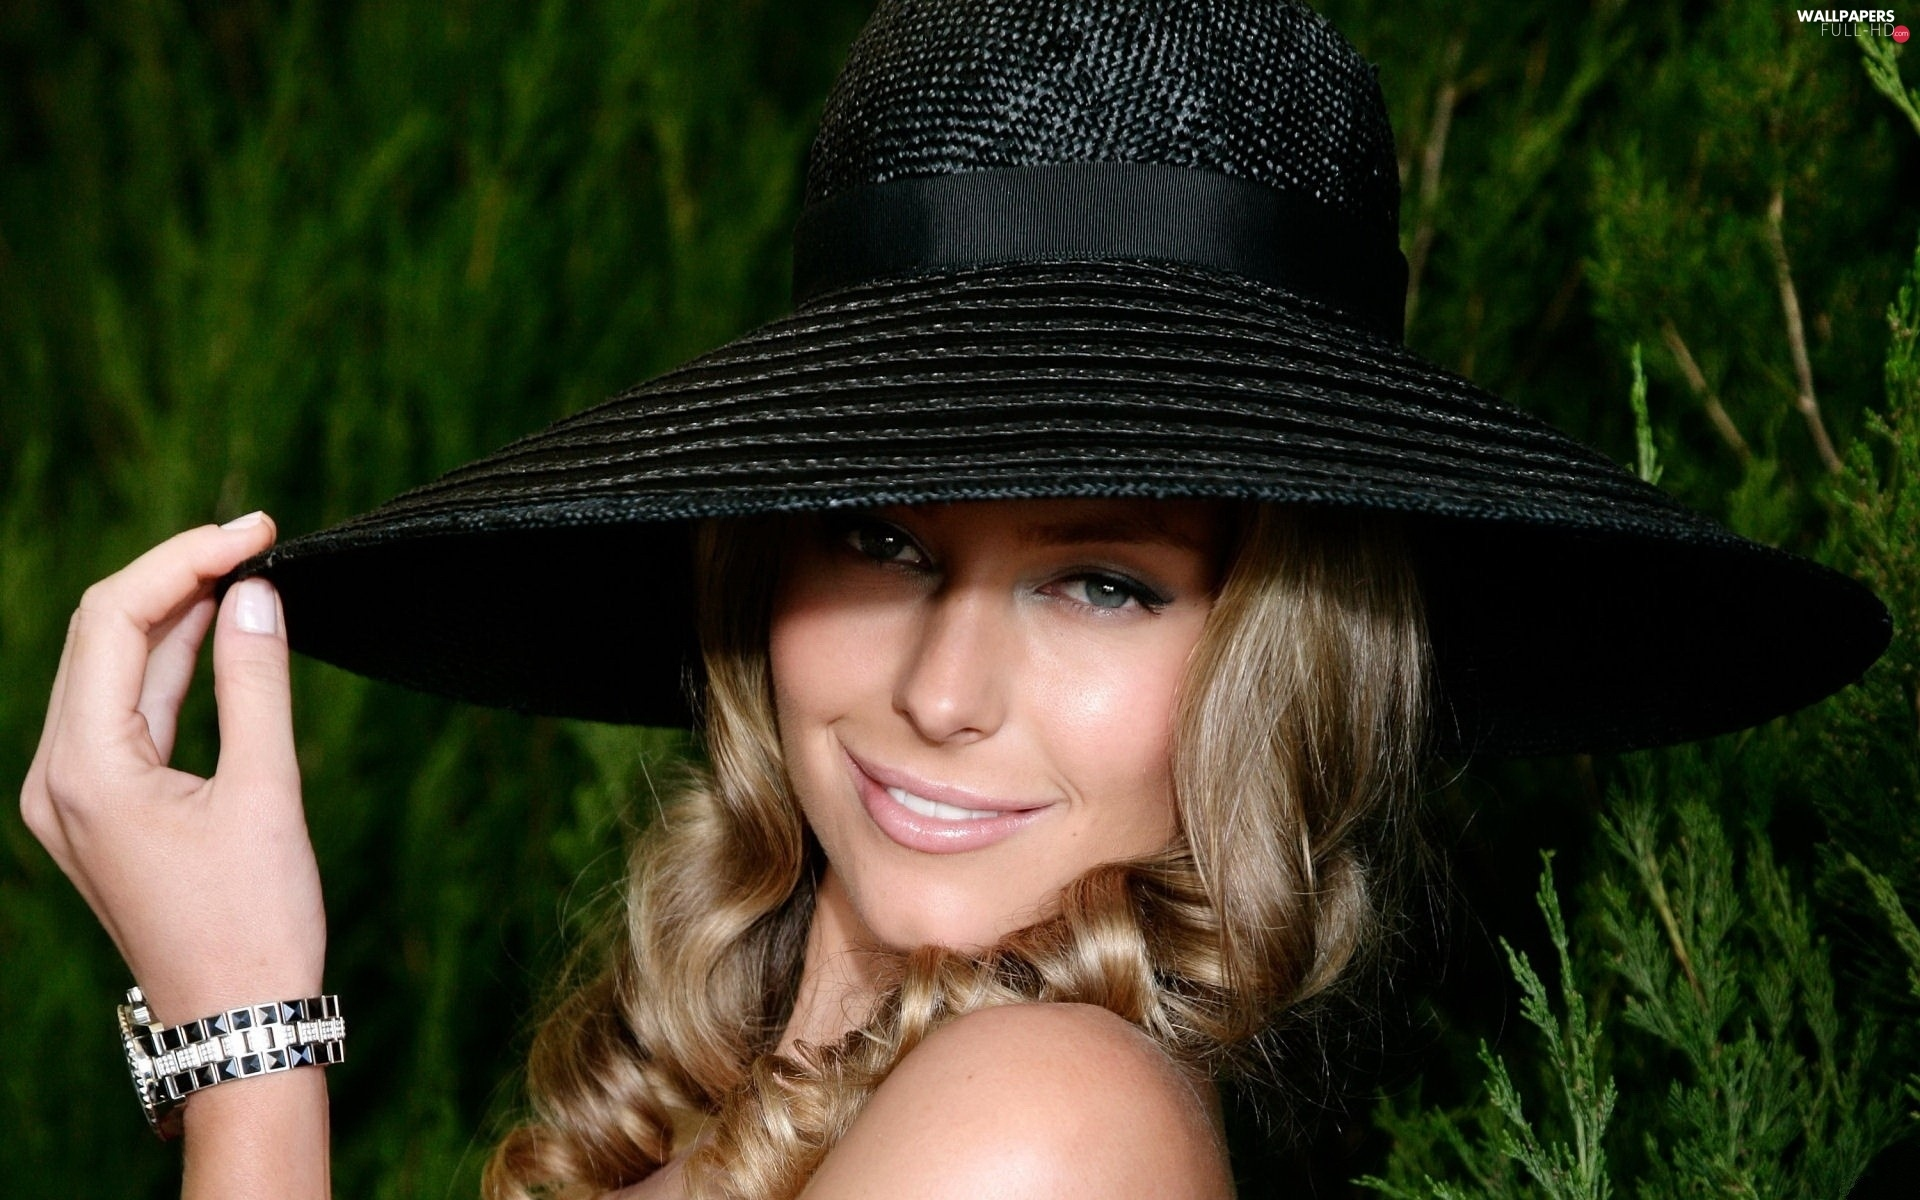 Hat, Smile, Jennifer Hawkins